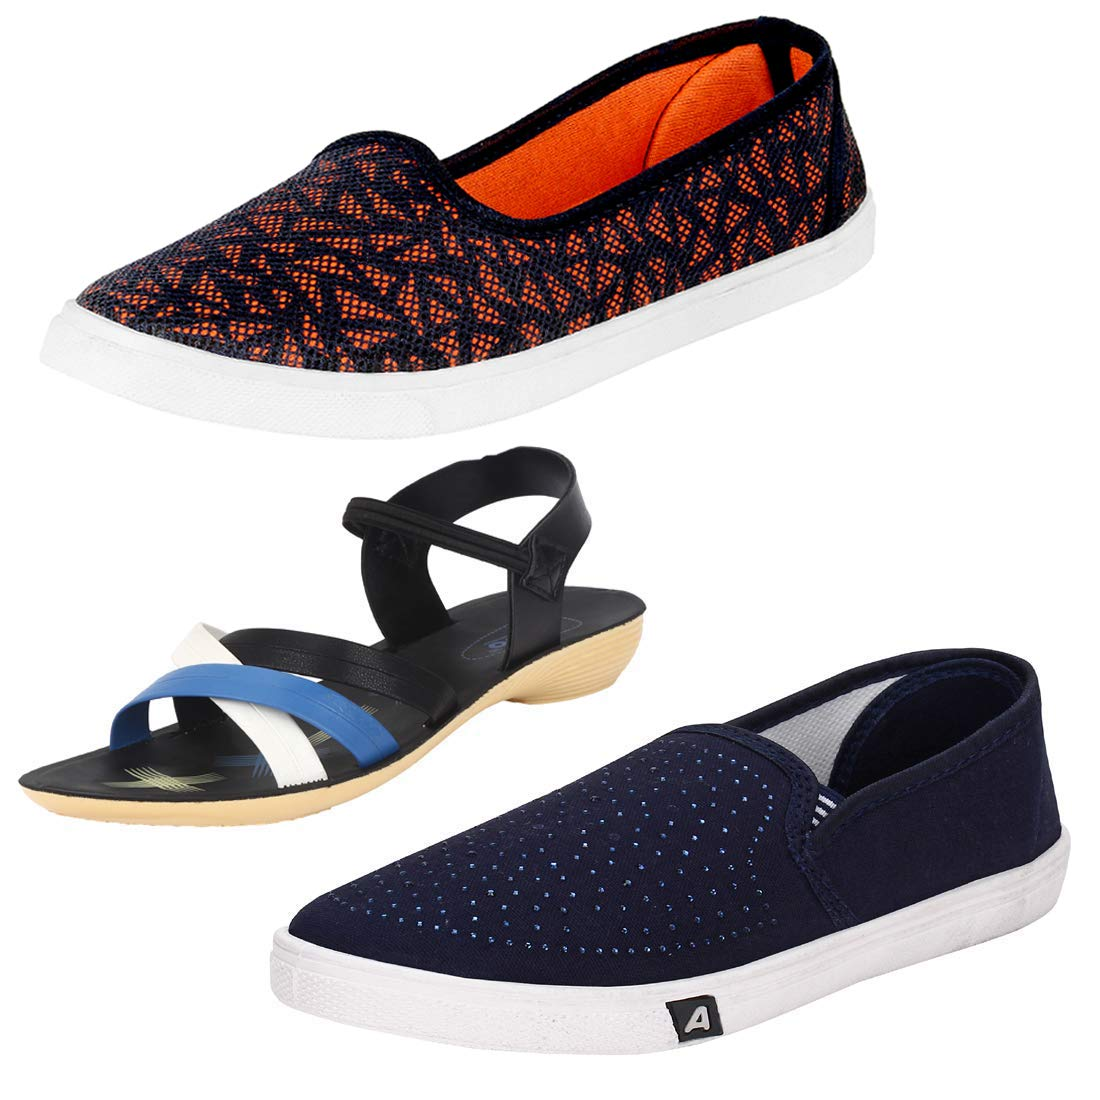 7acd1fa73530ff Earton Women Multi Combo Pack of 3 Casual   Sandal with Flip-Flops  Buy  Online at Low Prices in India - Amazon.in